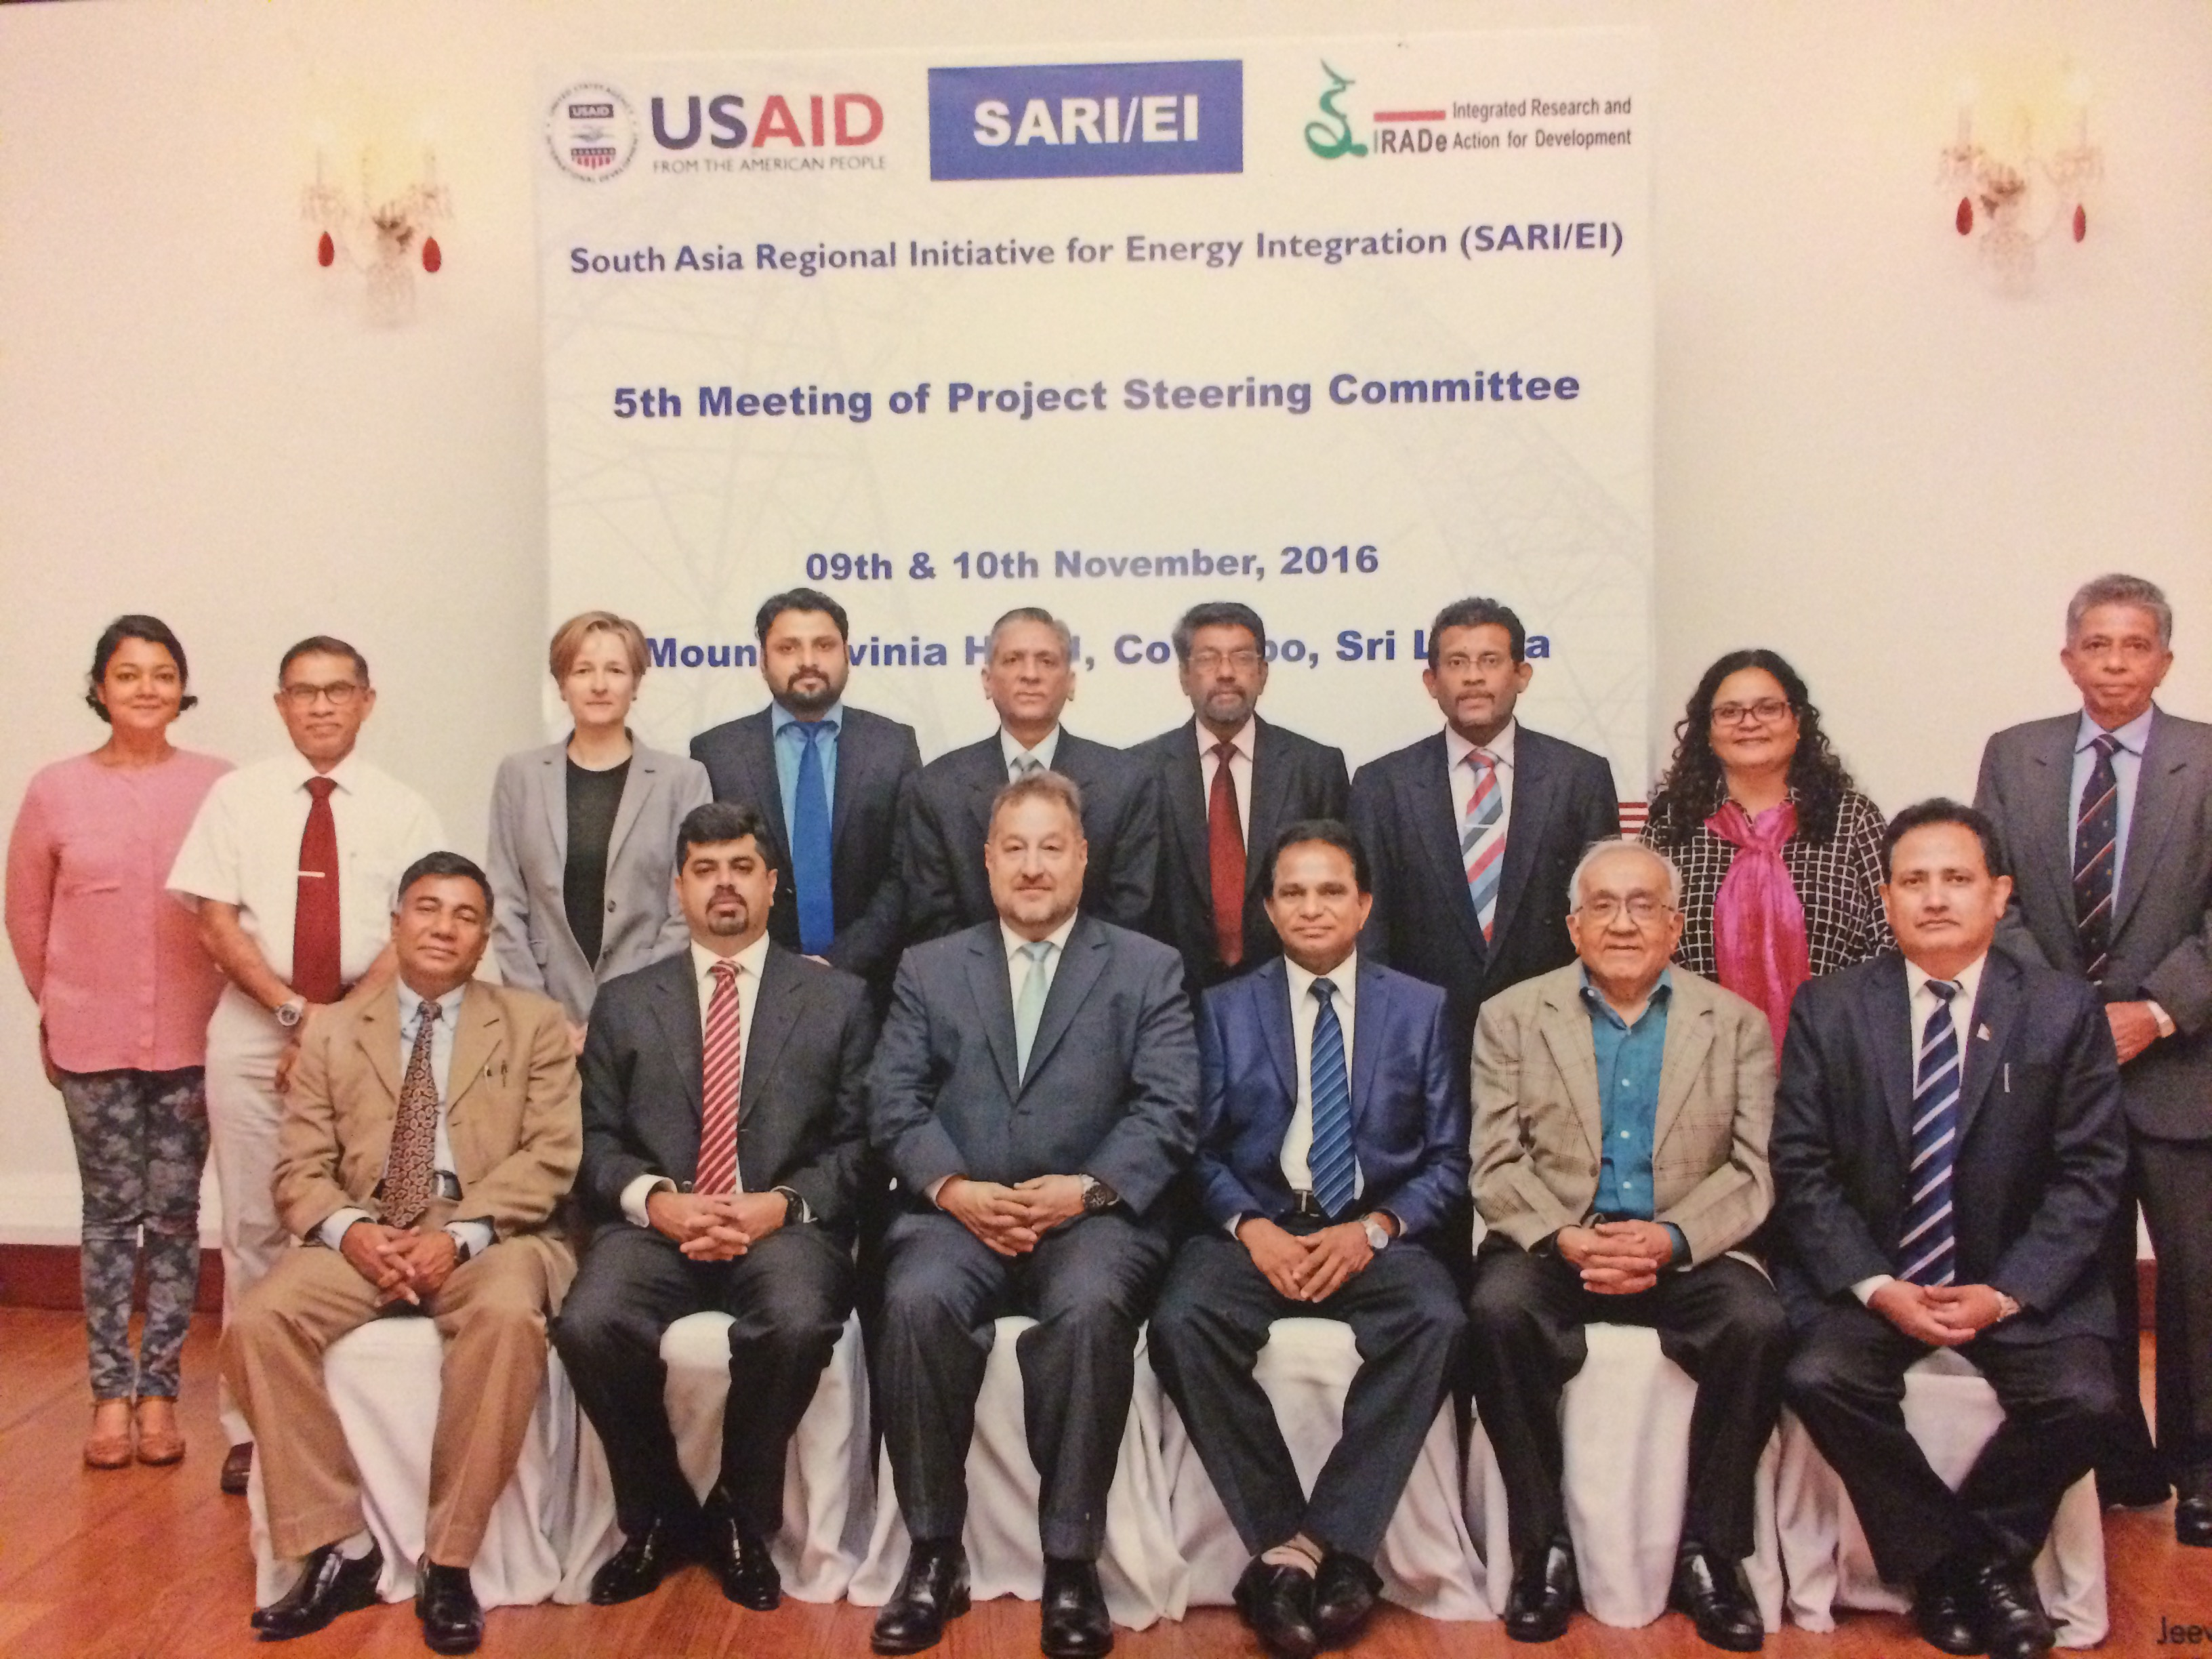 5th Meeting of Project Steering Committee-Maitland State Room  Mount Lavinia Hotel, Colombo, Sri Lanka 9th and 10th November,2016